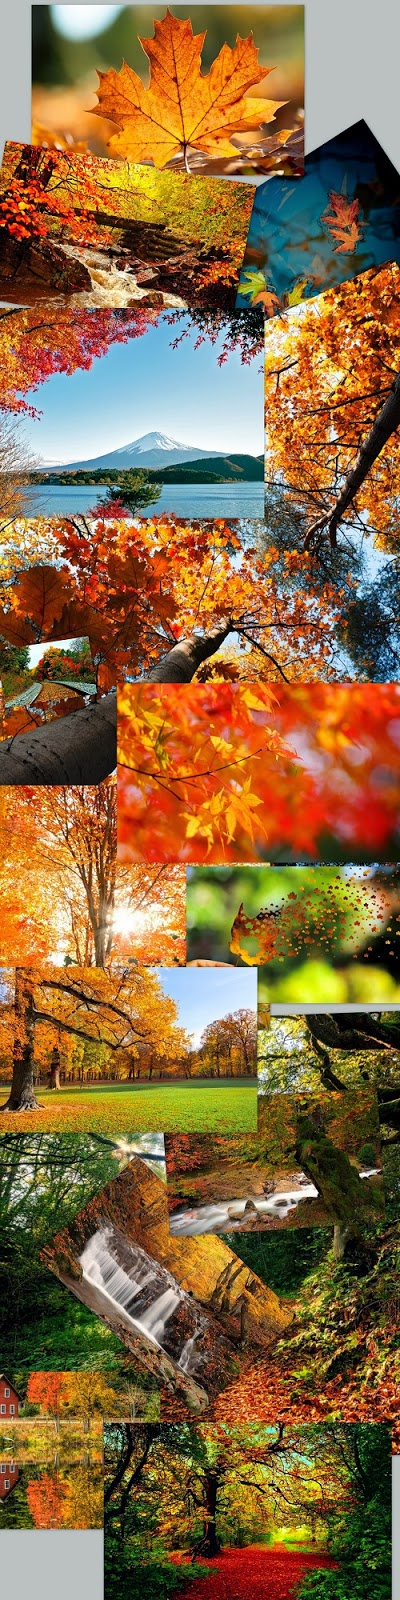 Autumn Theme For Windows 7 And 8 8.1